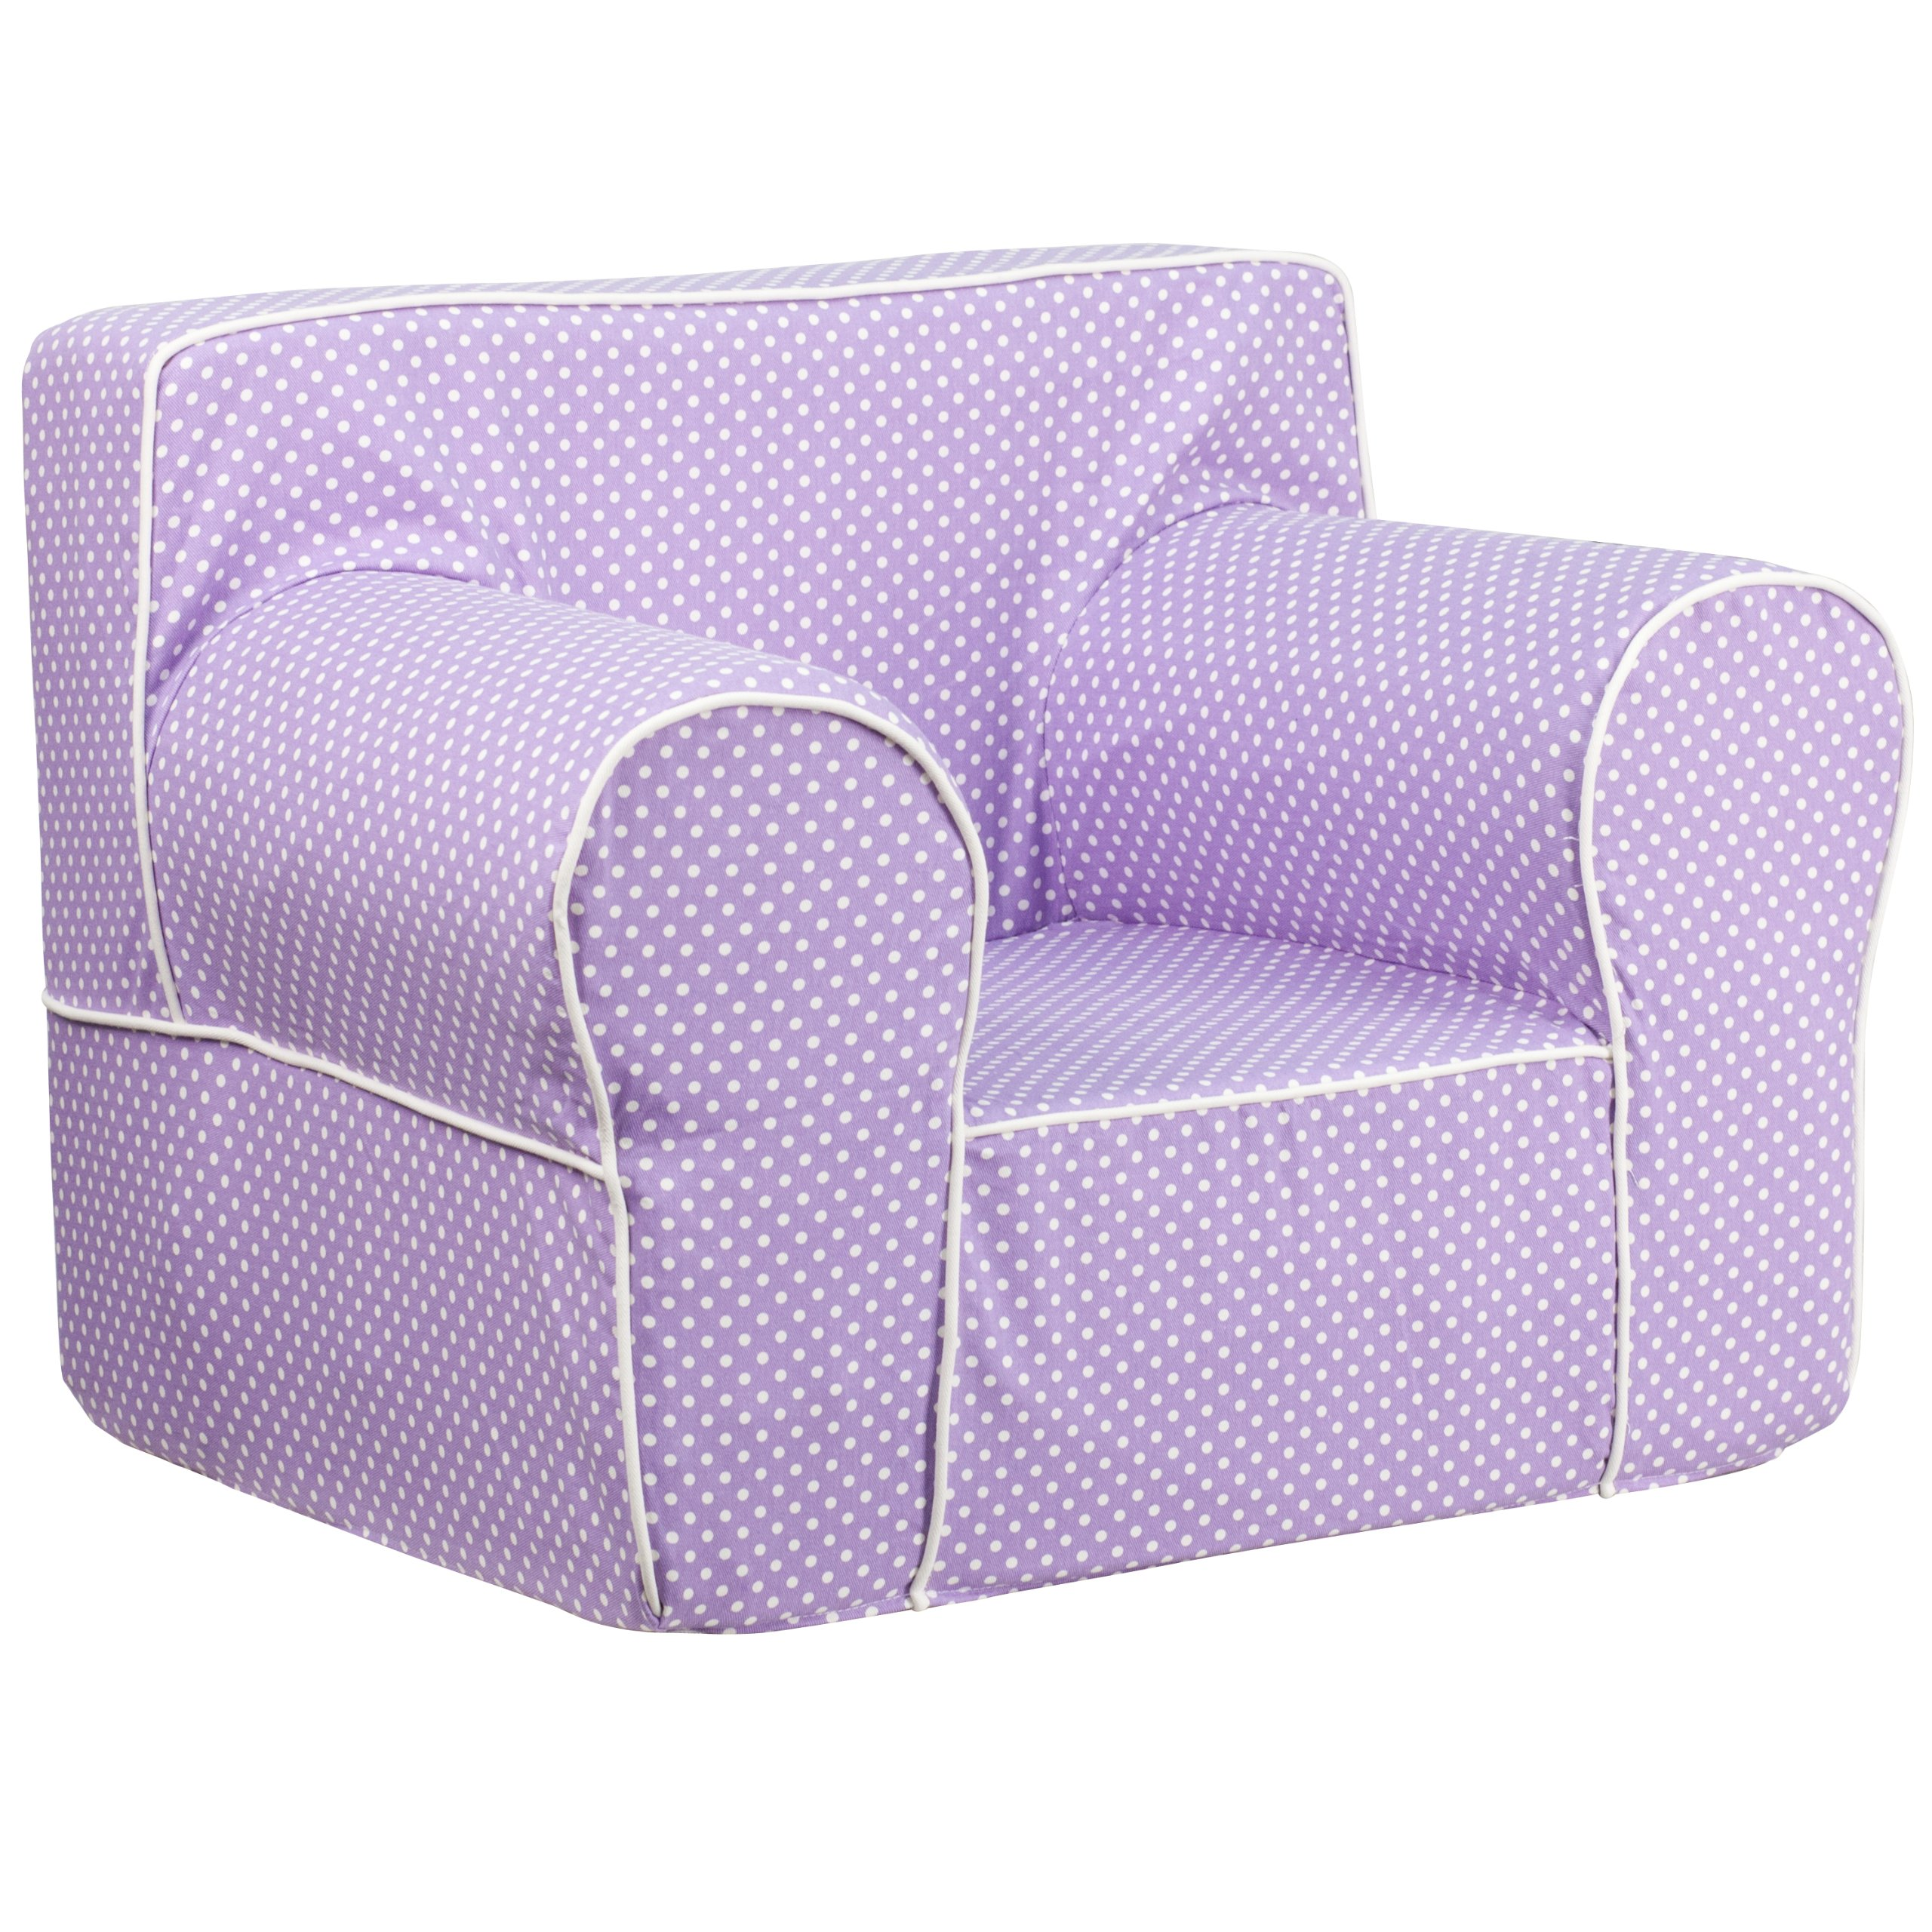 Flash Furniture Oversized Lavender Dot Kids Chair with White Piping by Flash Furniture